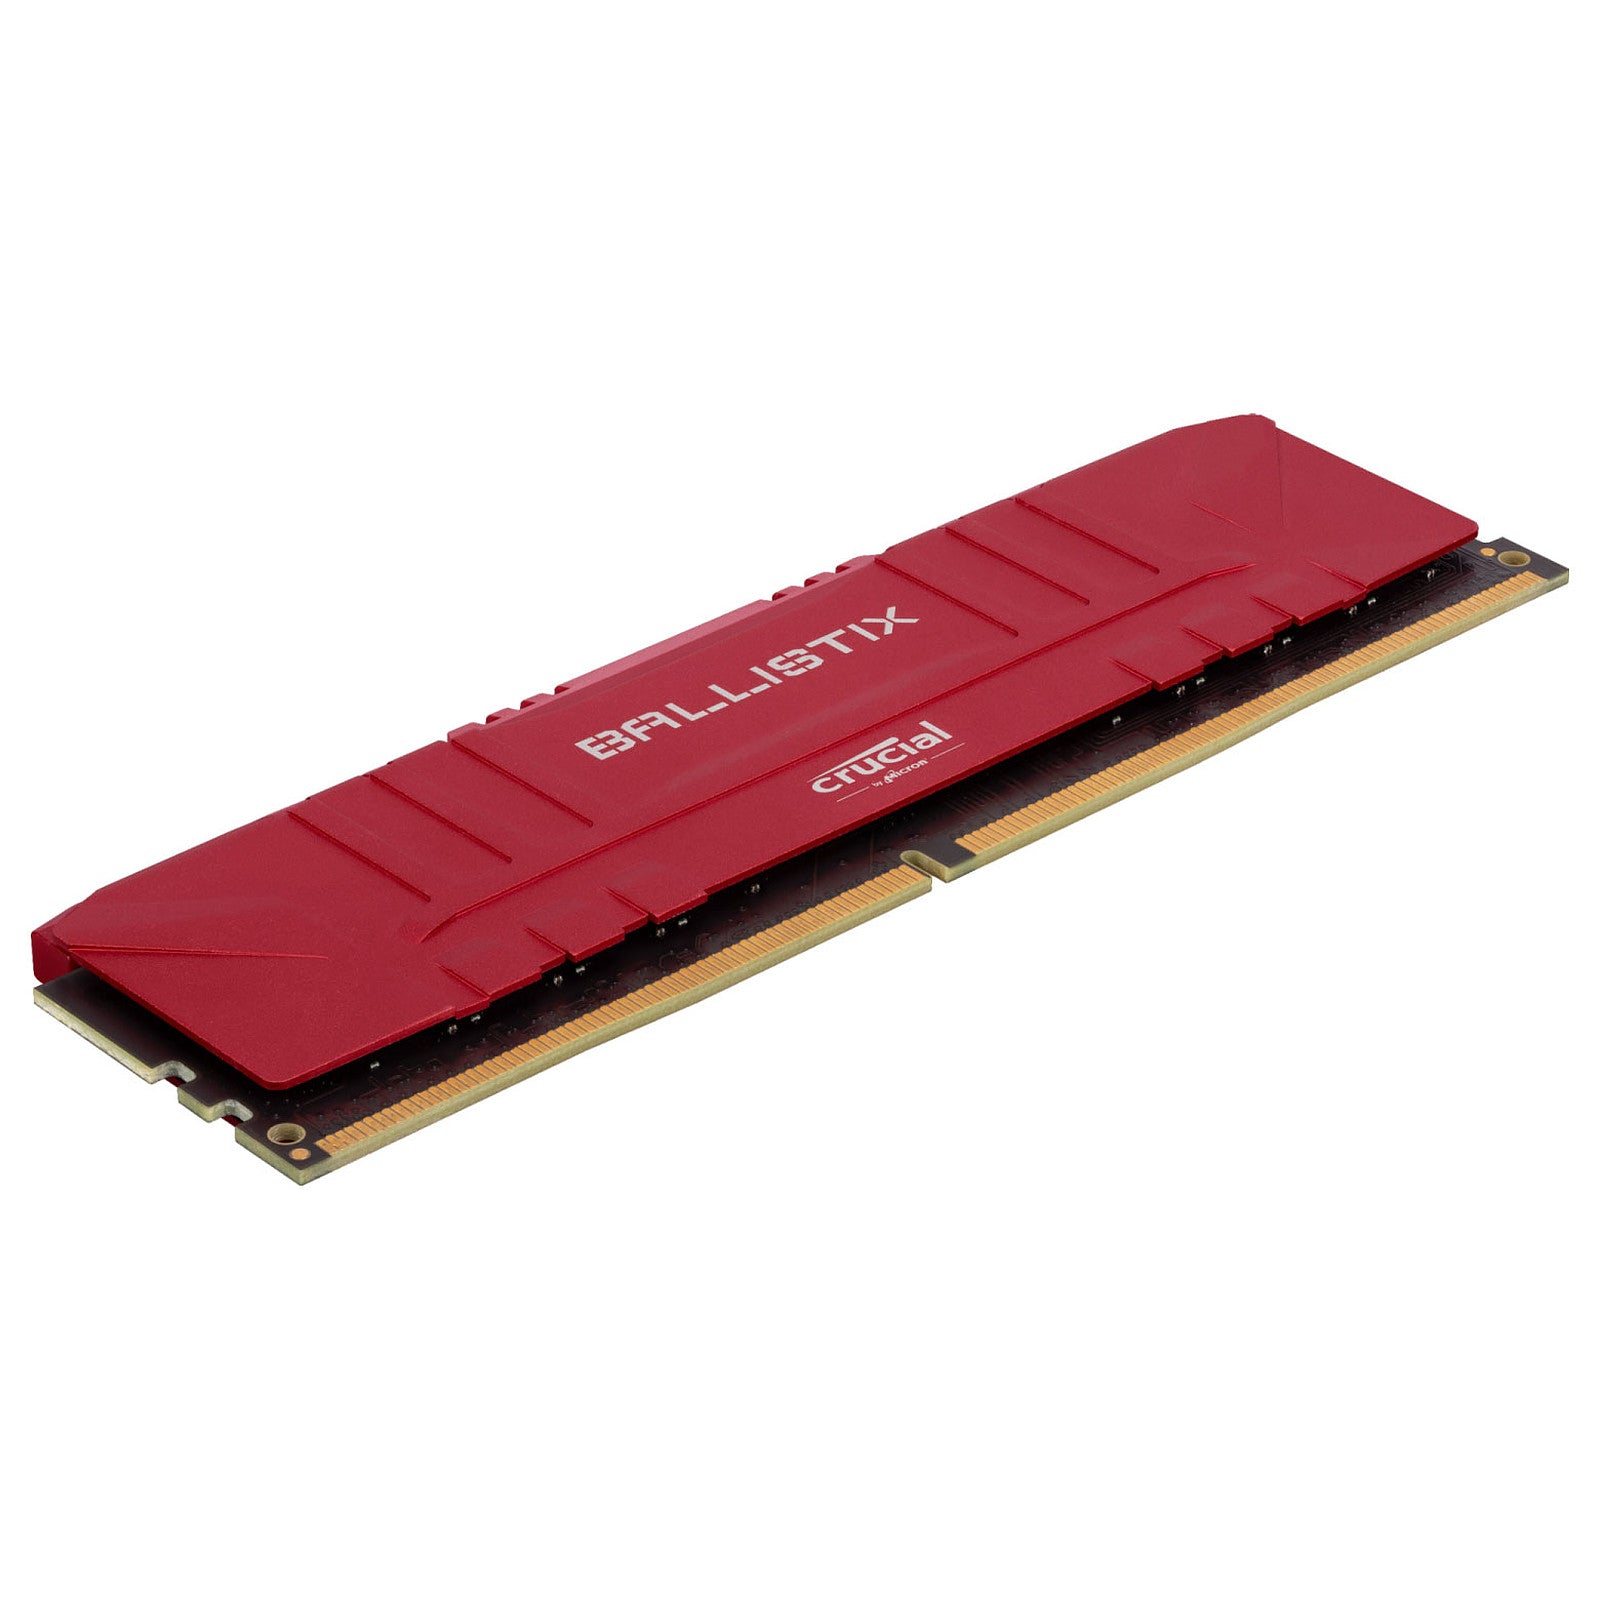 Ballistix Red 8 Go DDR4 3200 MHz CL16